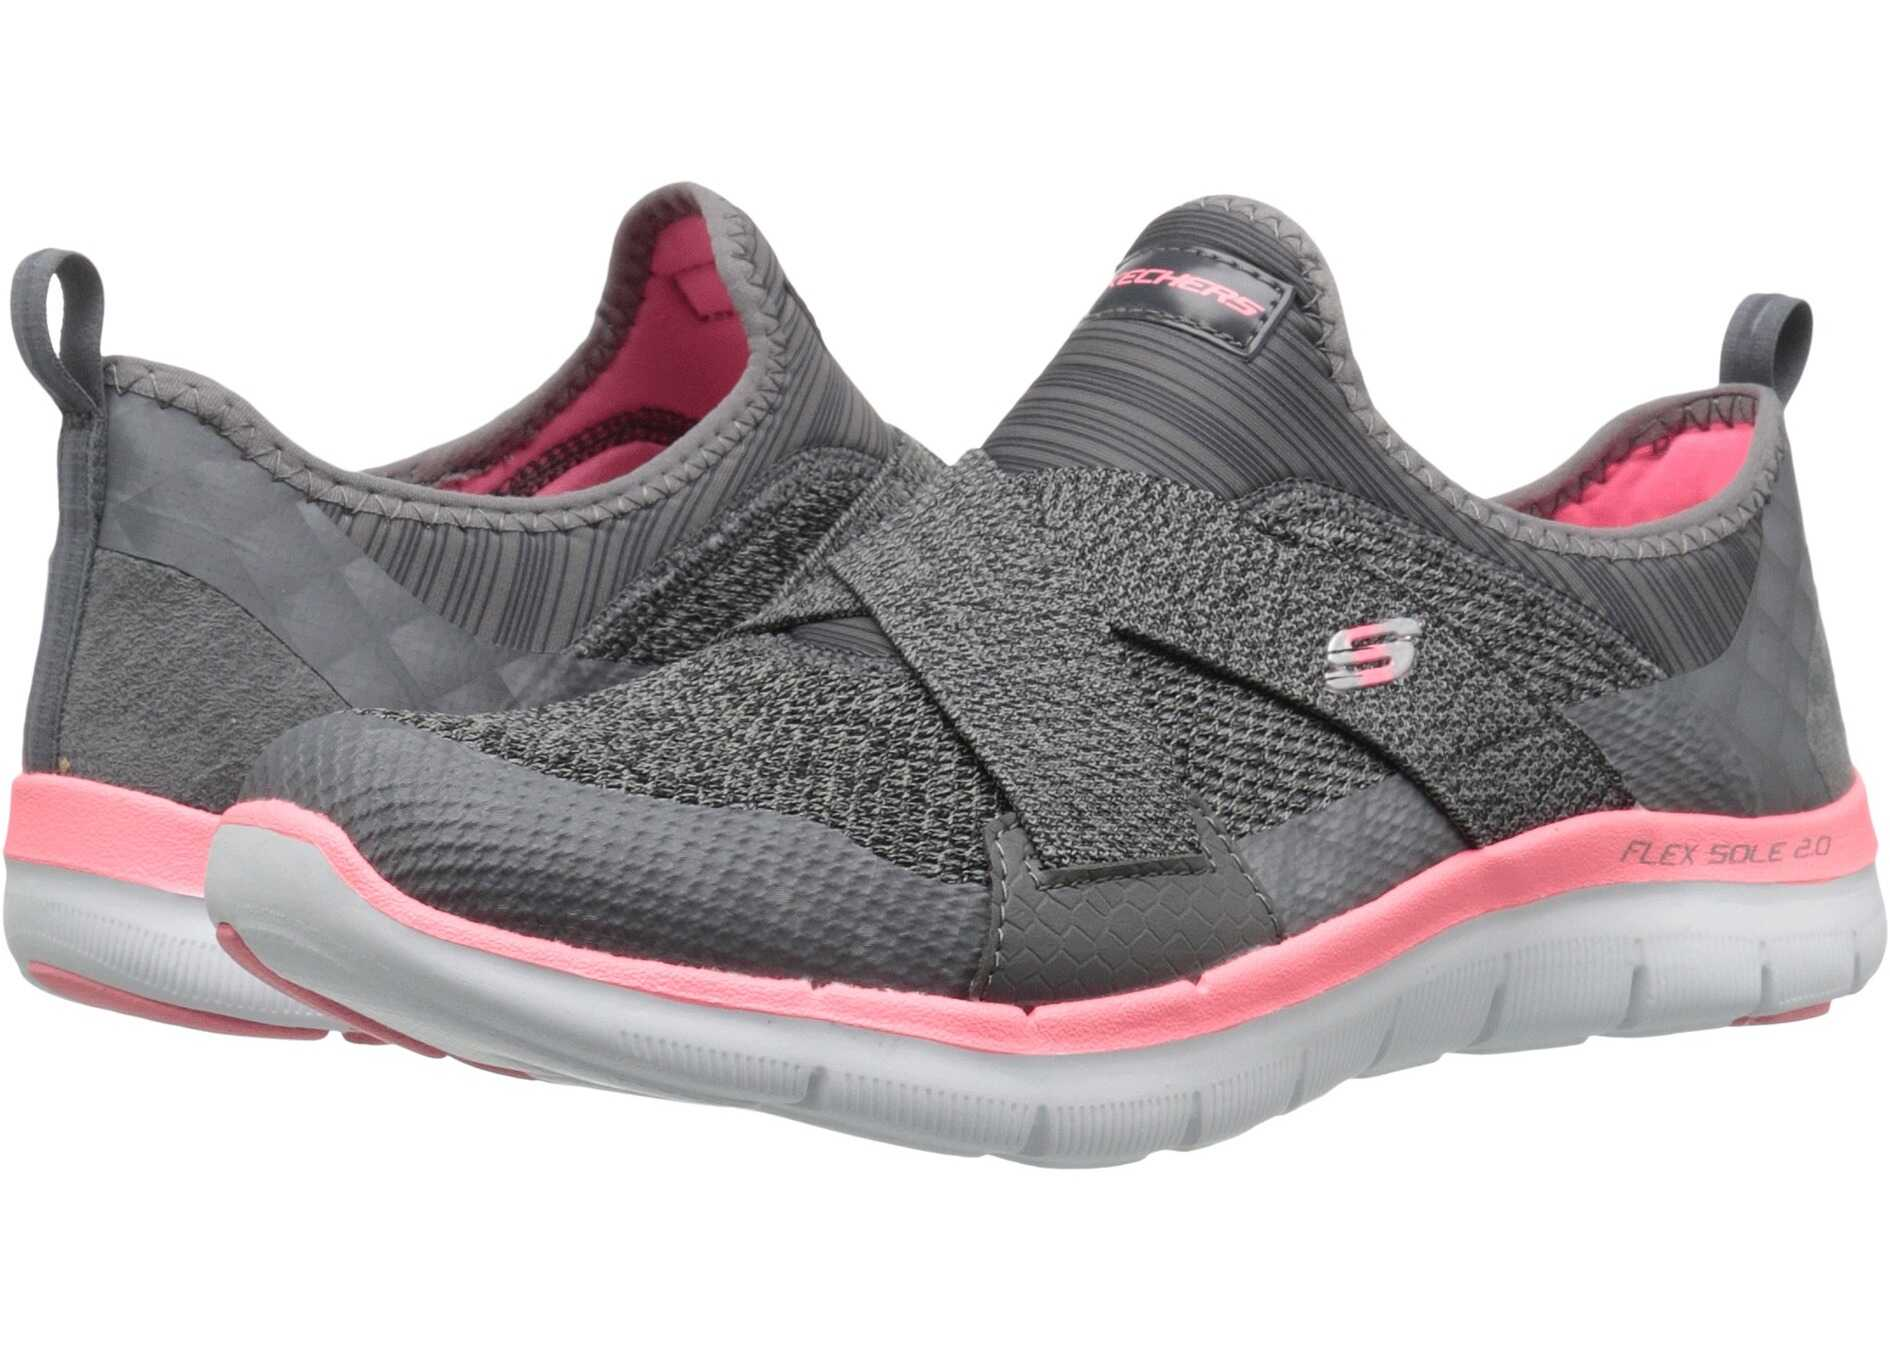 SKECHERS Flex Appeal 2.0 - New Image Charcoal/Coral